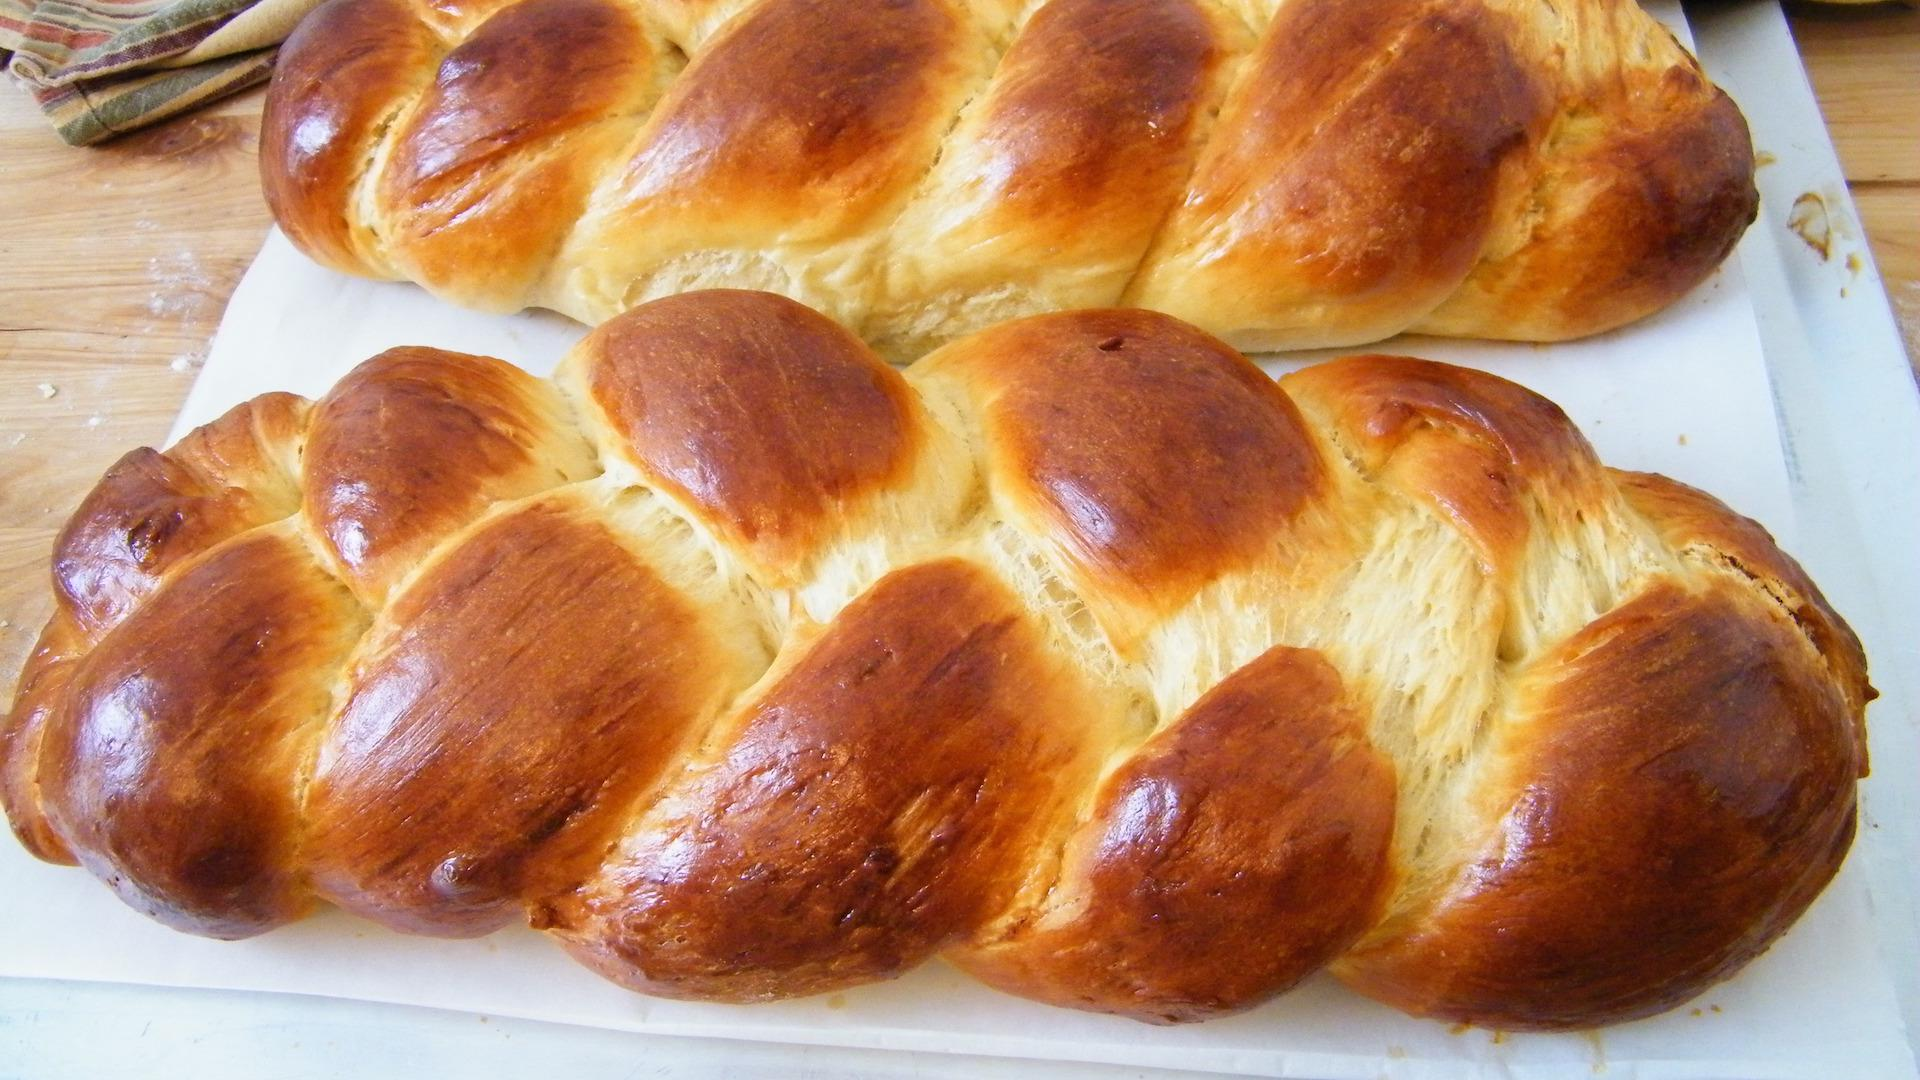 16 Challah Recipes To Enjoy This Traditional Braided Bread Sheknows